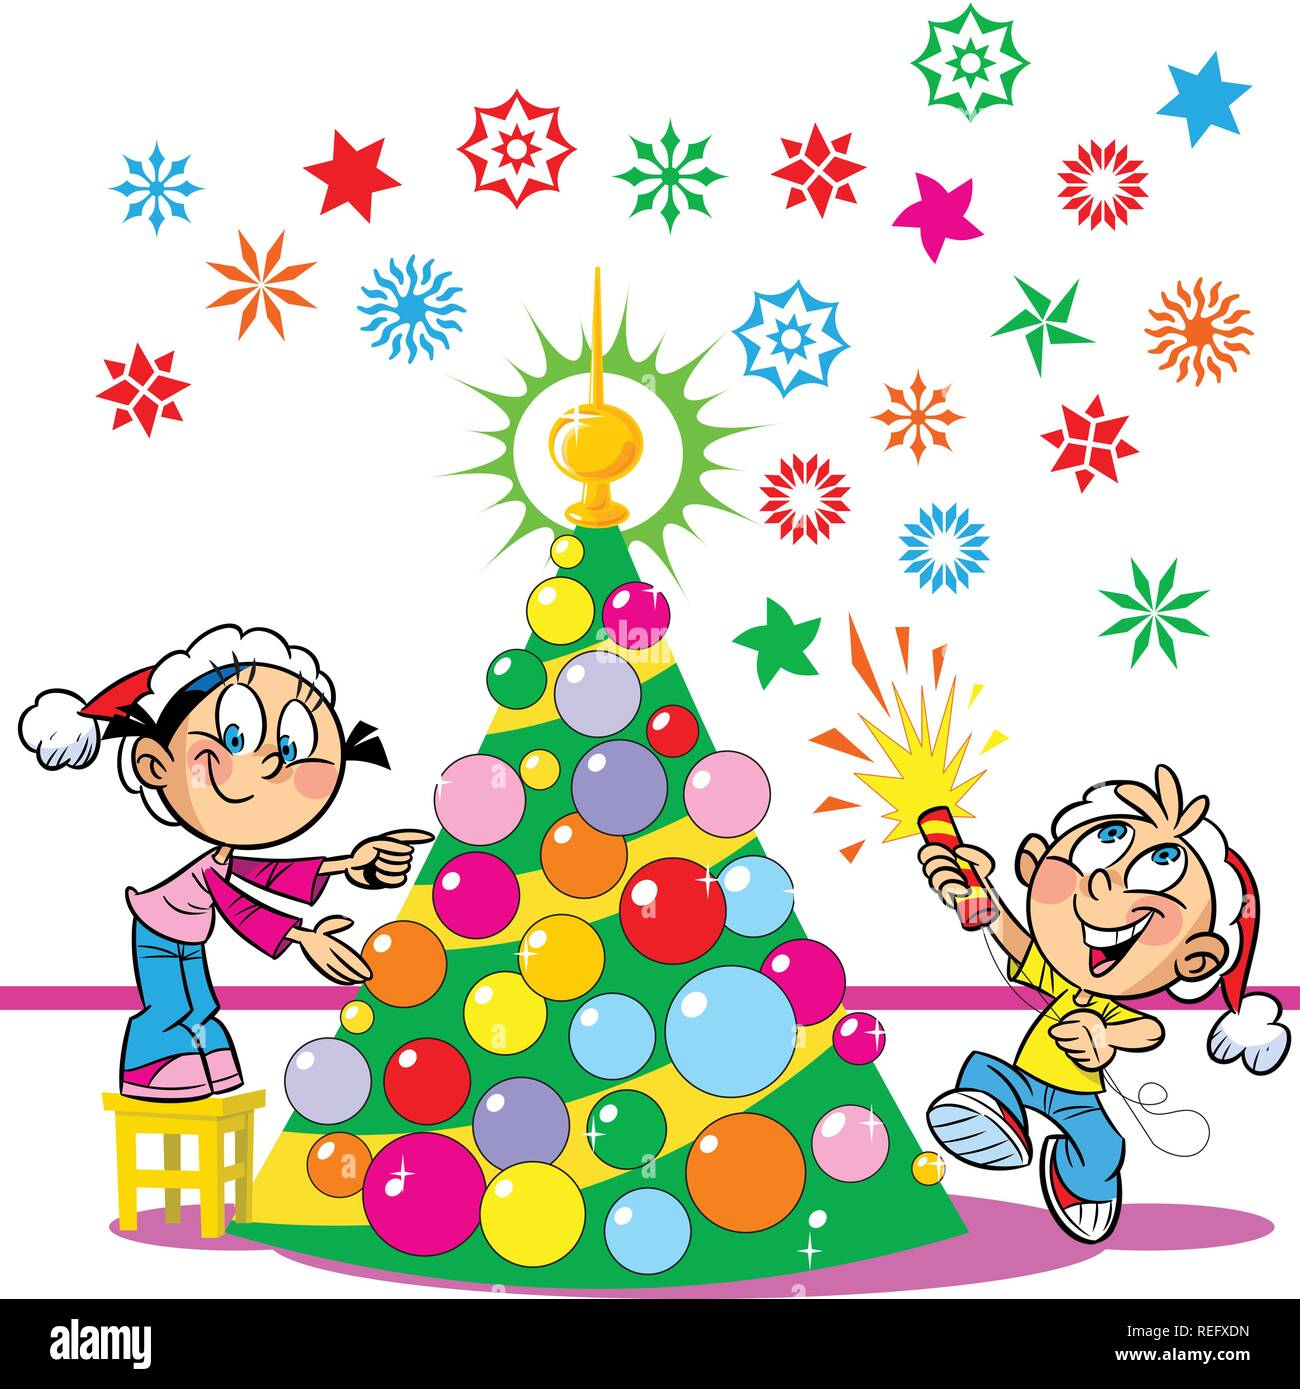 In The Illustration The Children Decorate The Christmas Tree Boy And Girl Funny And Amusing The Boy In The Hands Of Party Poppers Illustration Don Stock Vector Image Art Alamy Download 2,504 cartoon christmas tree free vectors. https www alamy com in the illustration the children decorate the christmas tree boy and girl funny and amusing the boy in the hands of party poppers illustration don image232690017 html